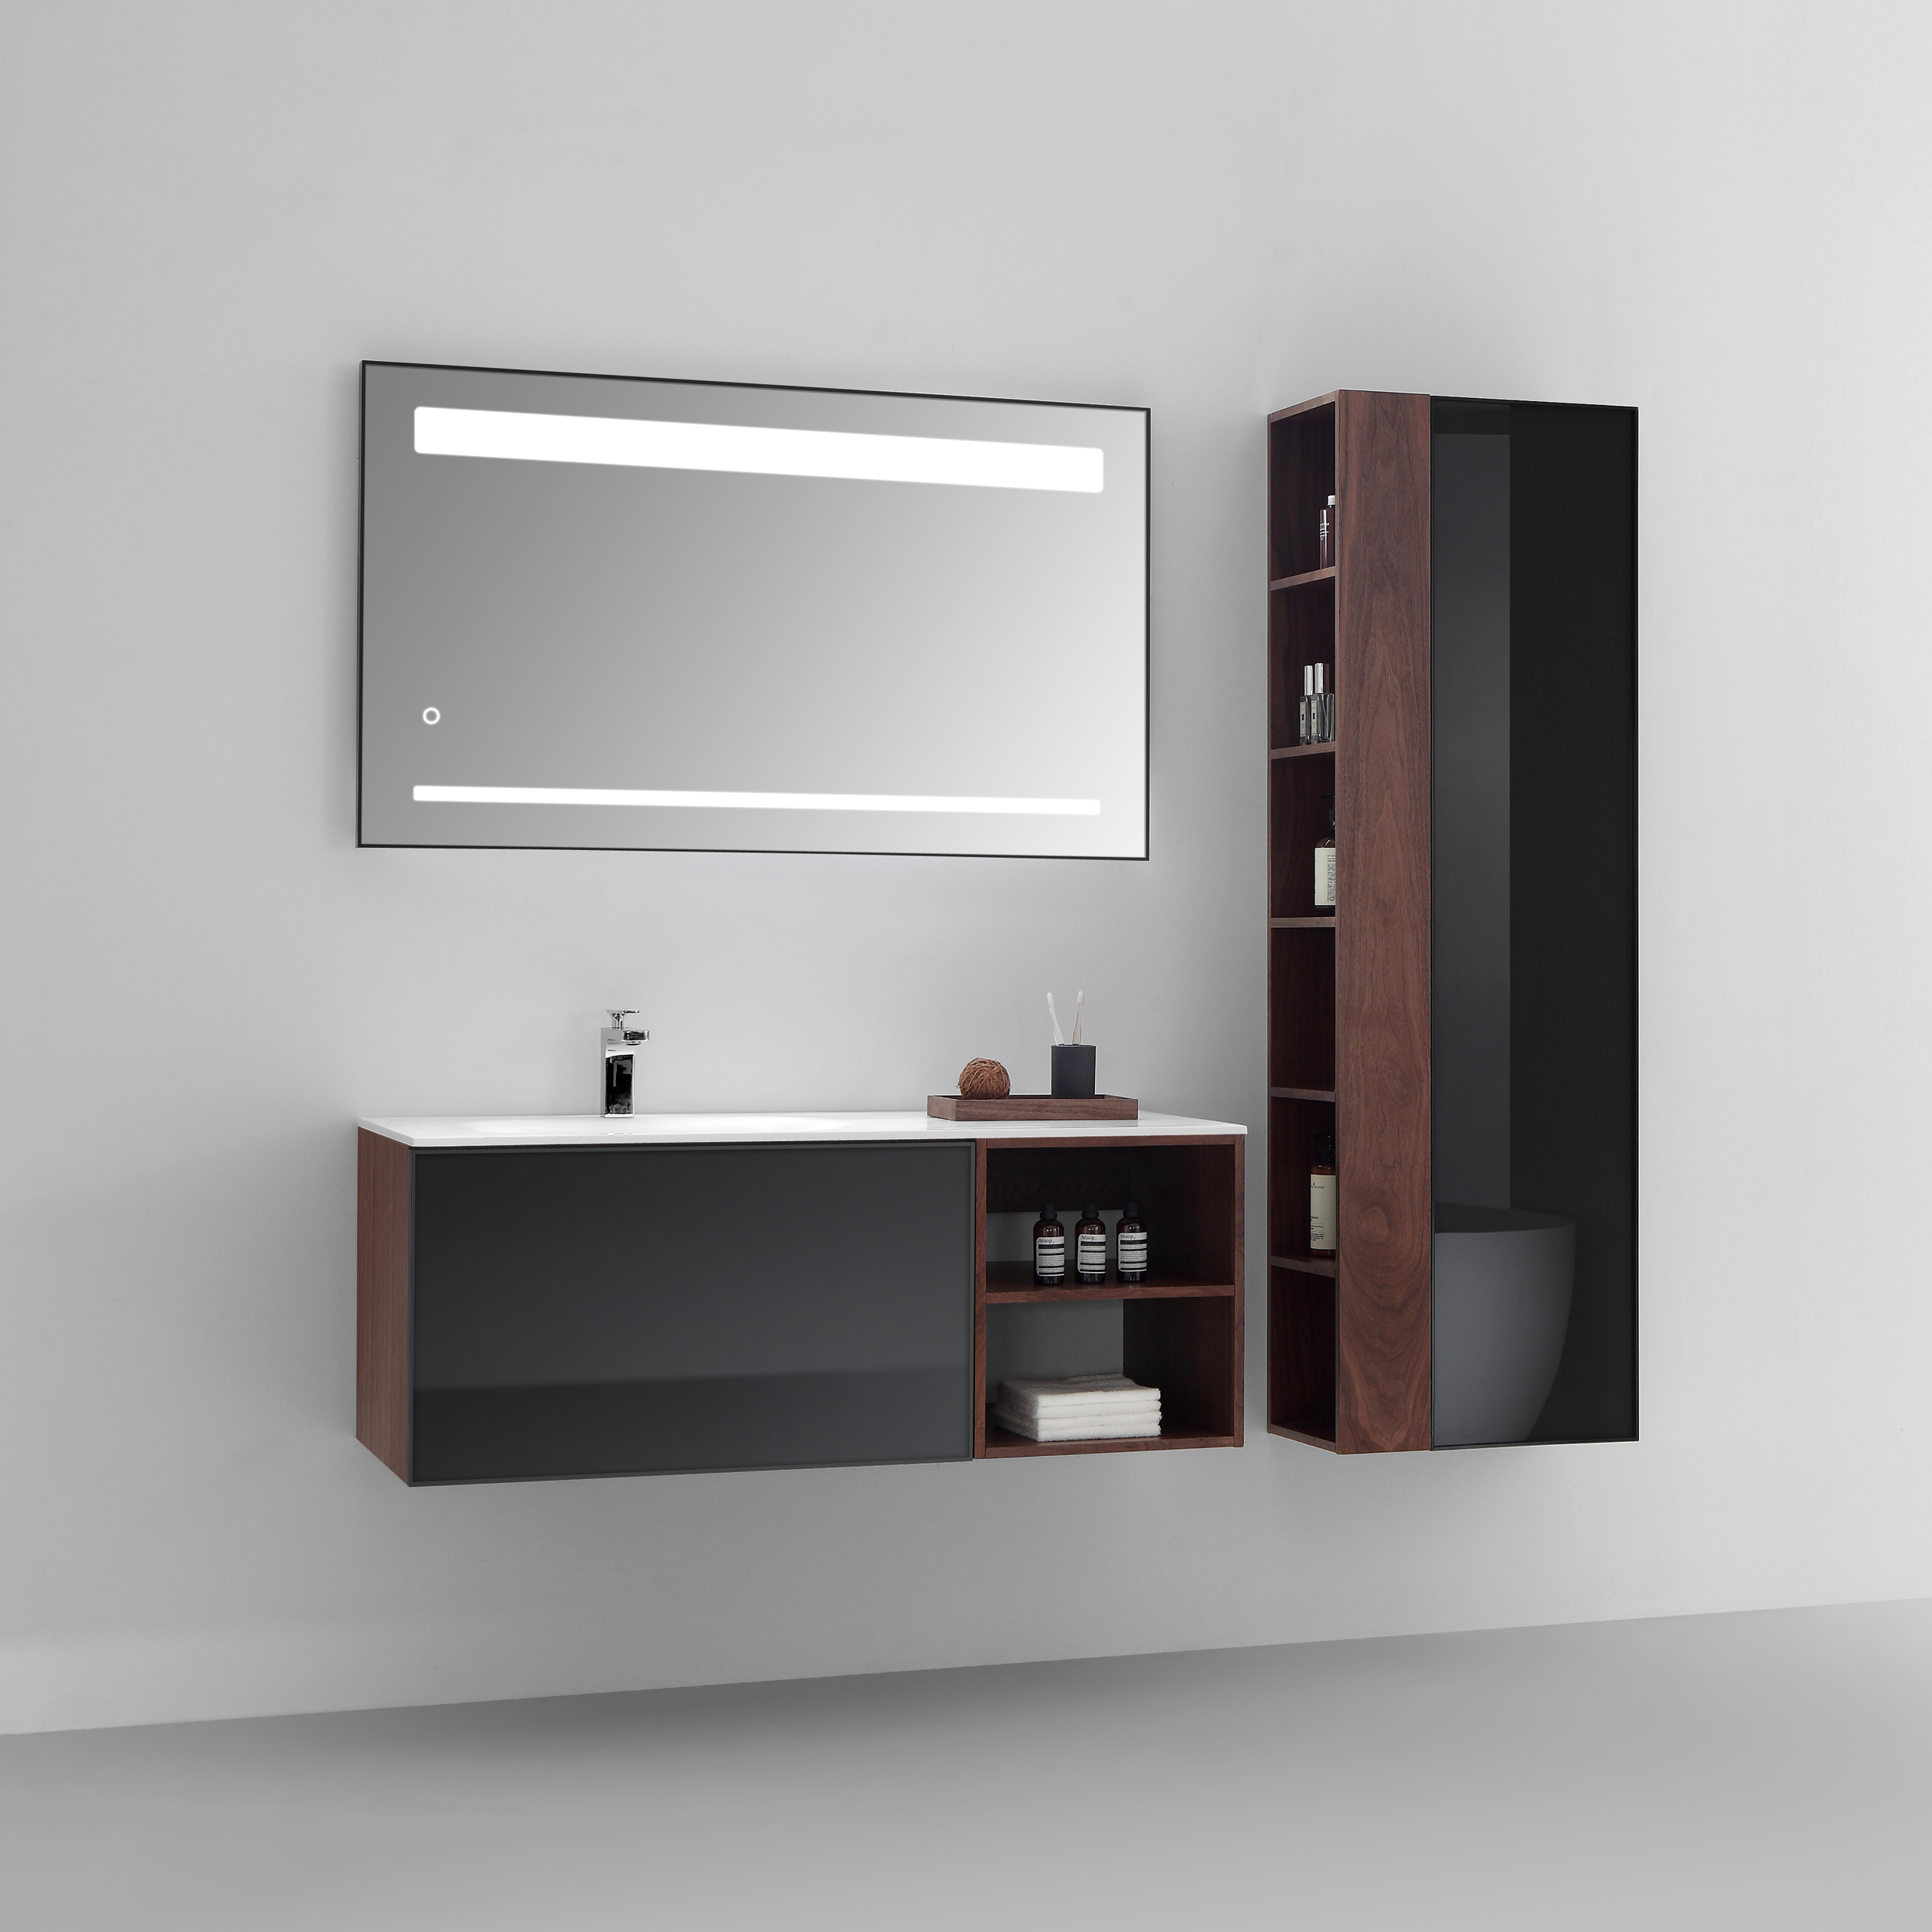 design cabinet unique corner cabinets mount storage mounted bathroom best small on bathrooms wall of pretty